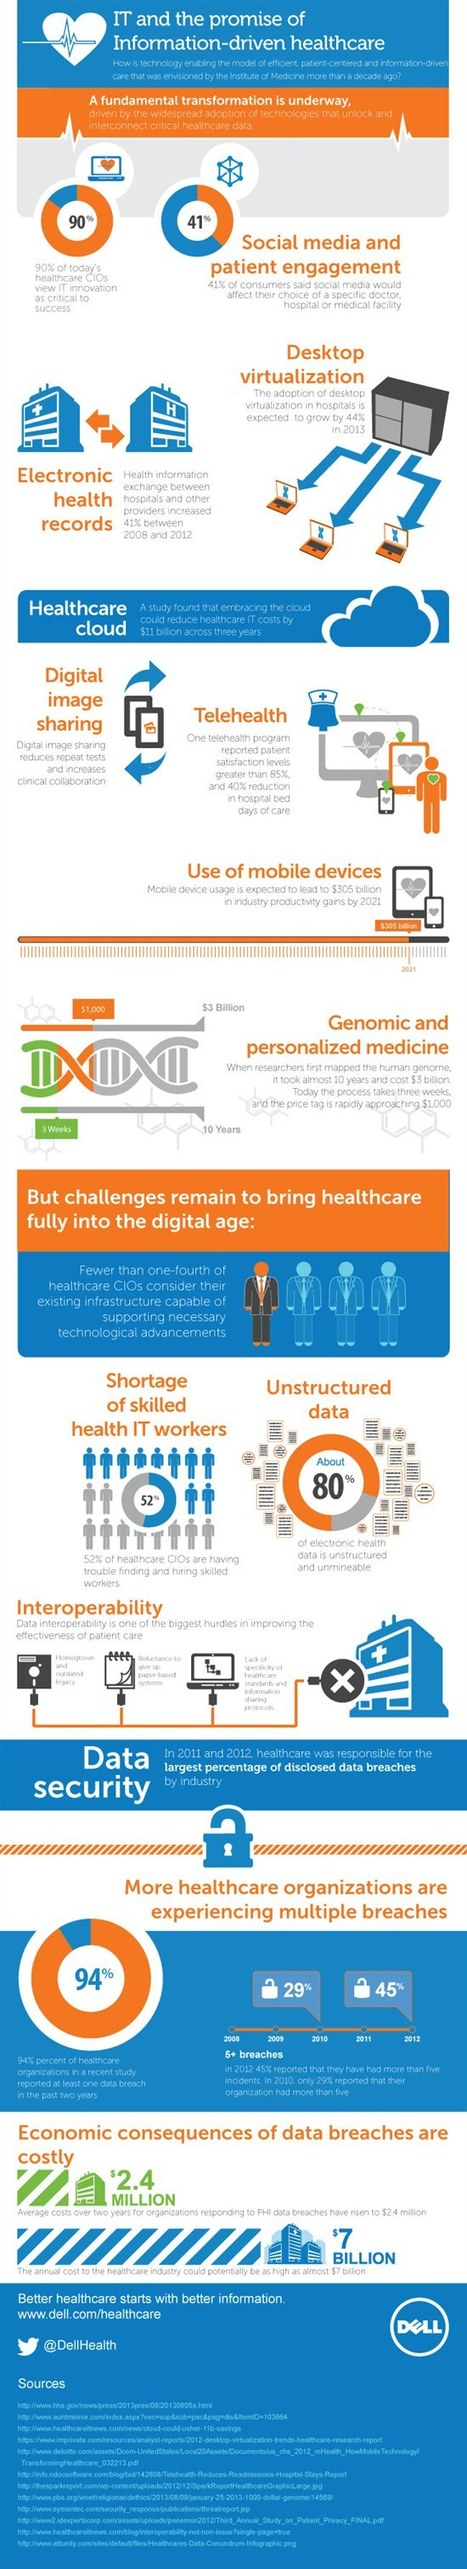 IT and the promise of Information-drive healthcare | Health care | Scoop.it